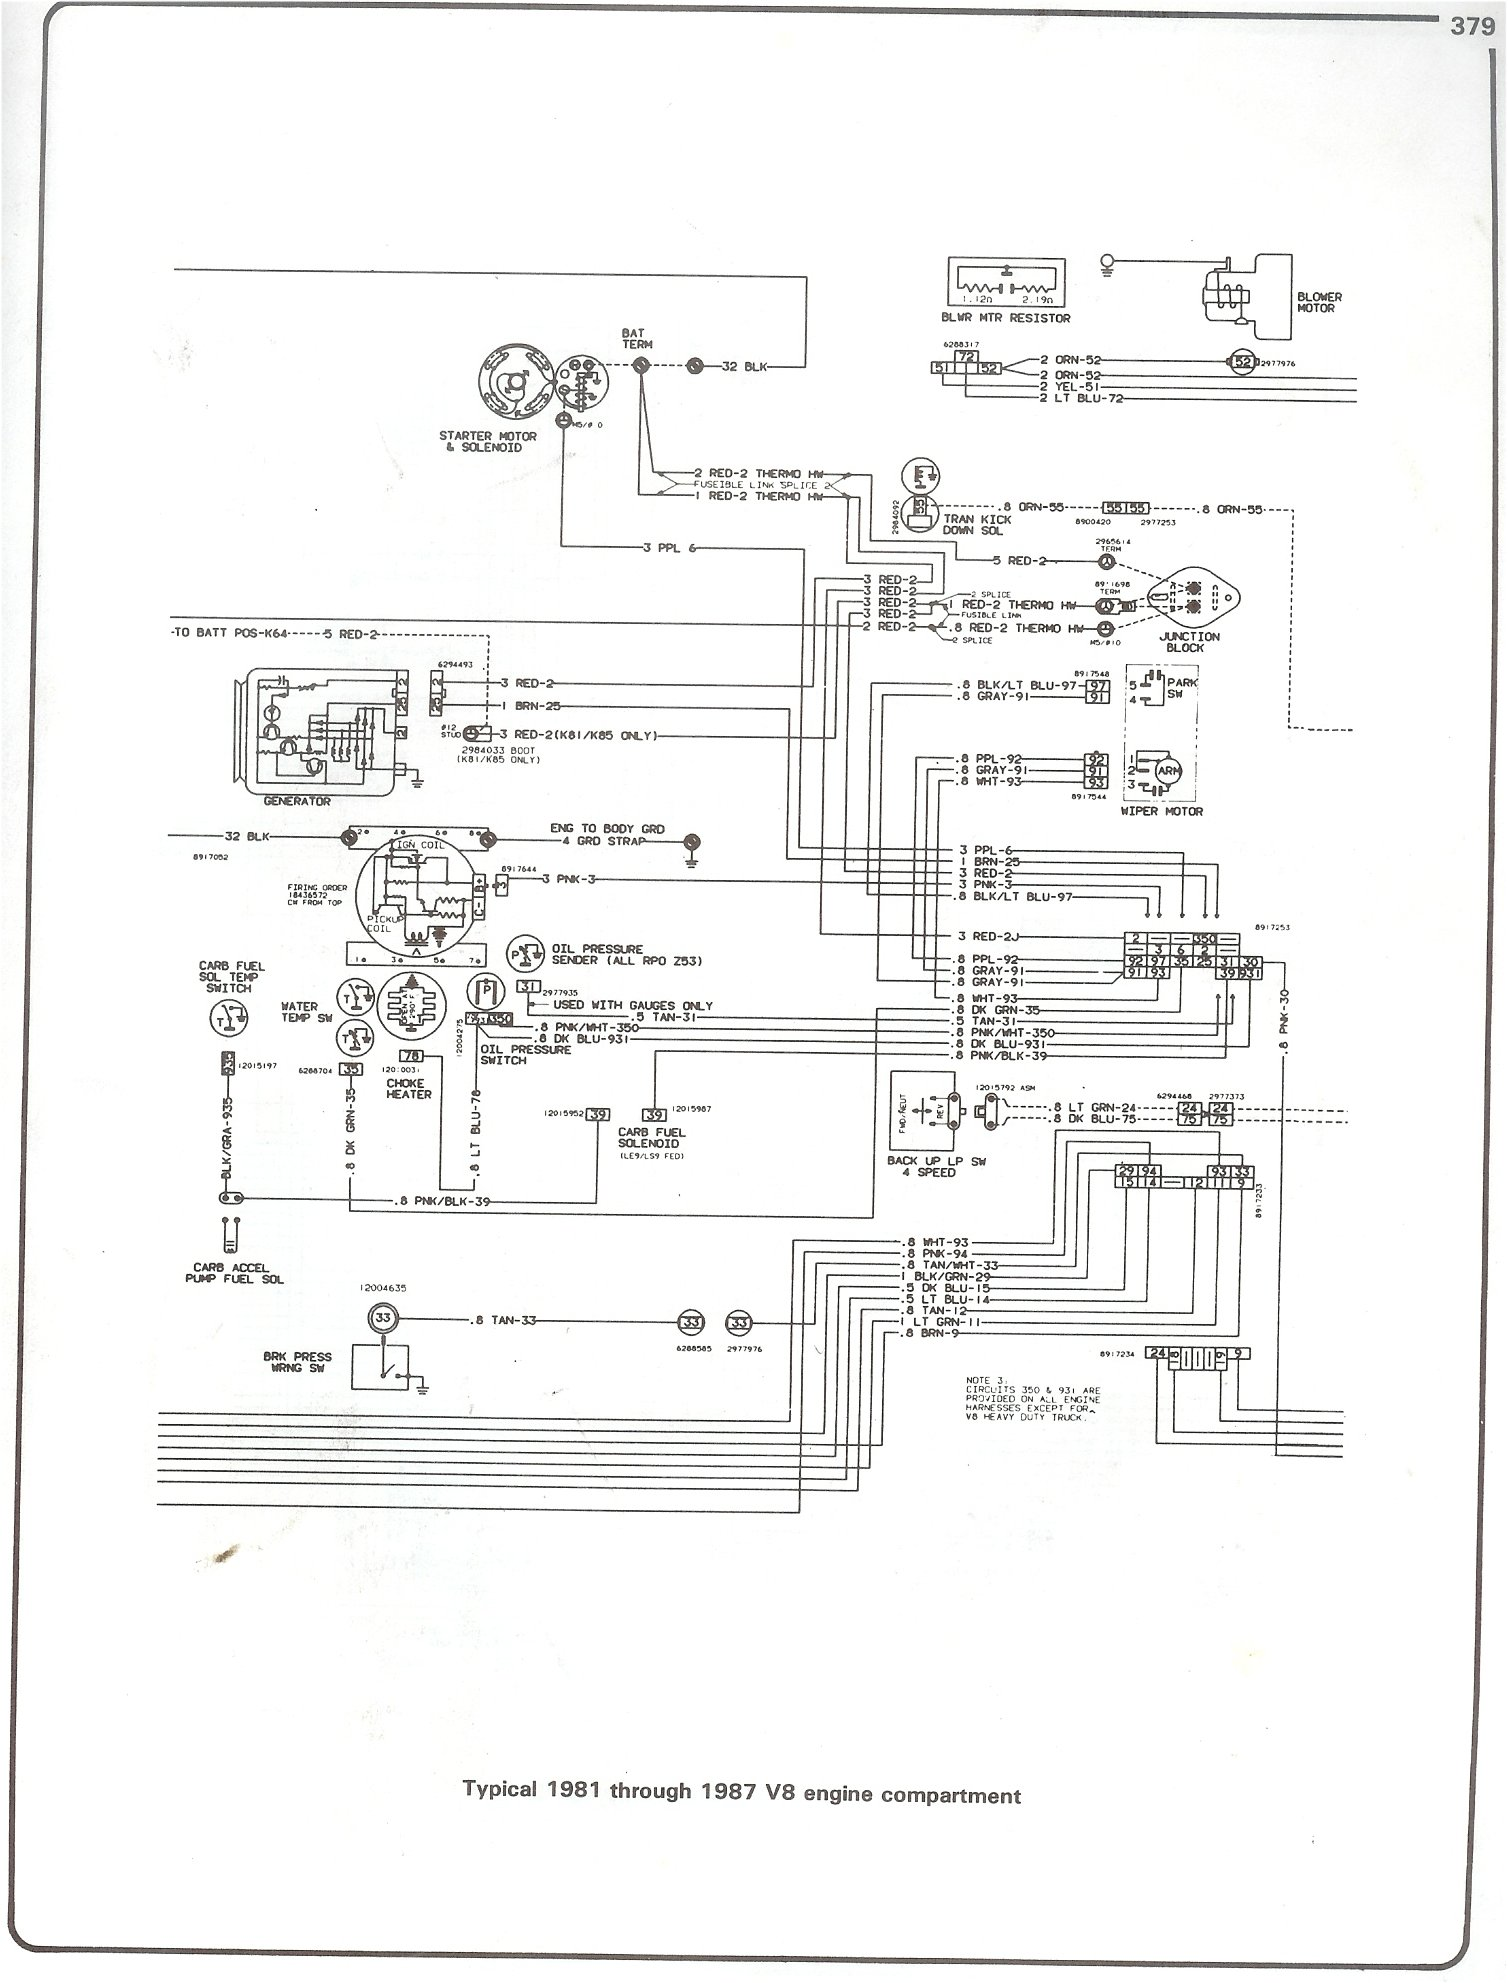 Fuse Box Diagram 1990 Books Of Wiring 86 Mustang Gt Engine Complete 73 87 Diagrams Chevy Silverado Ford F150